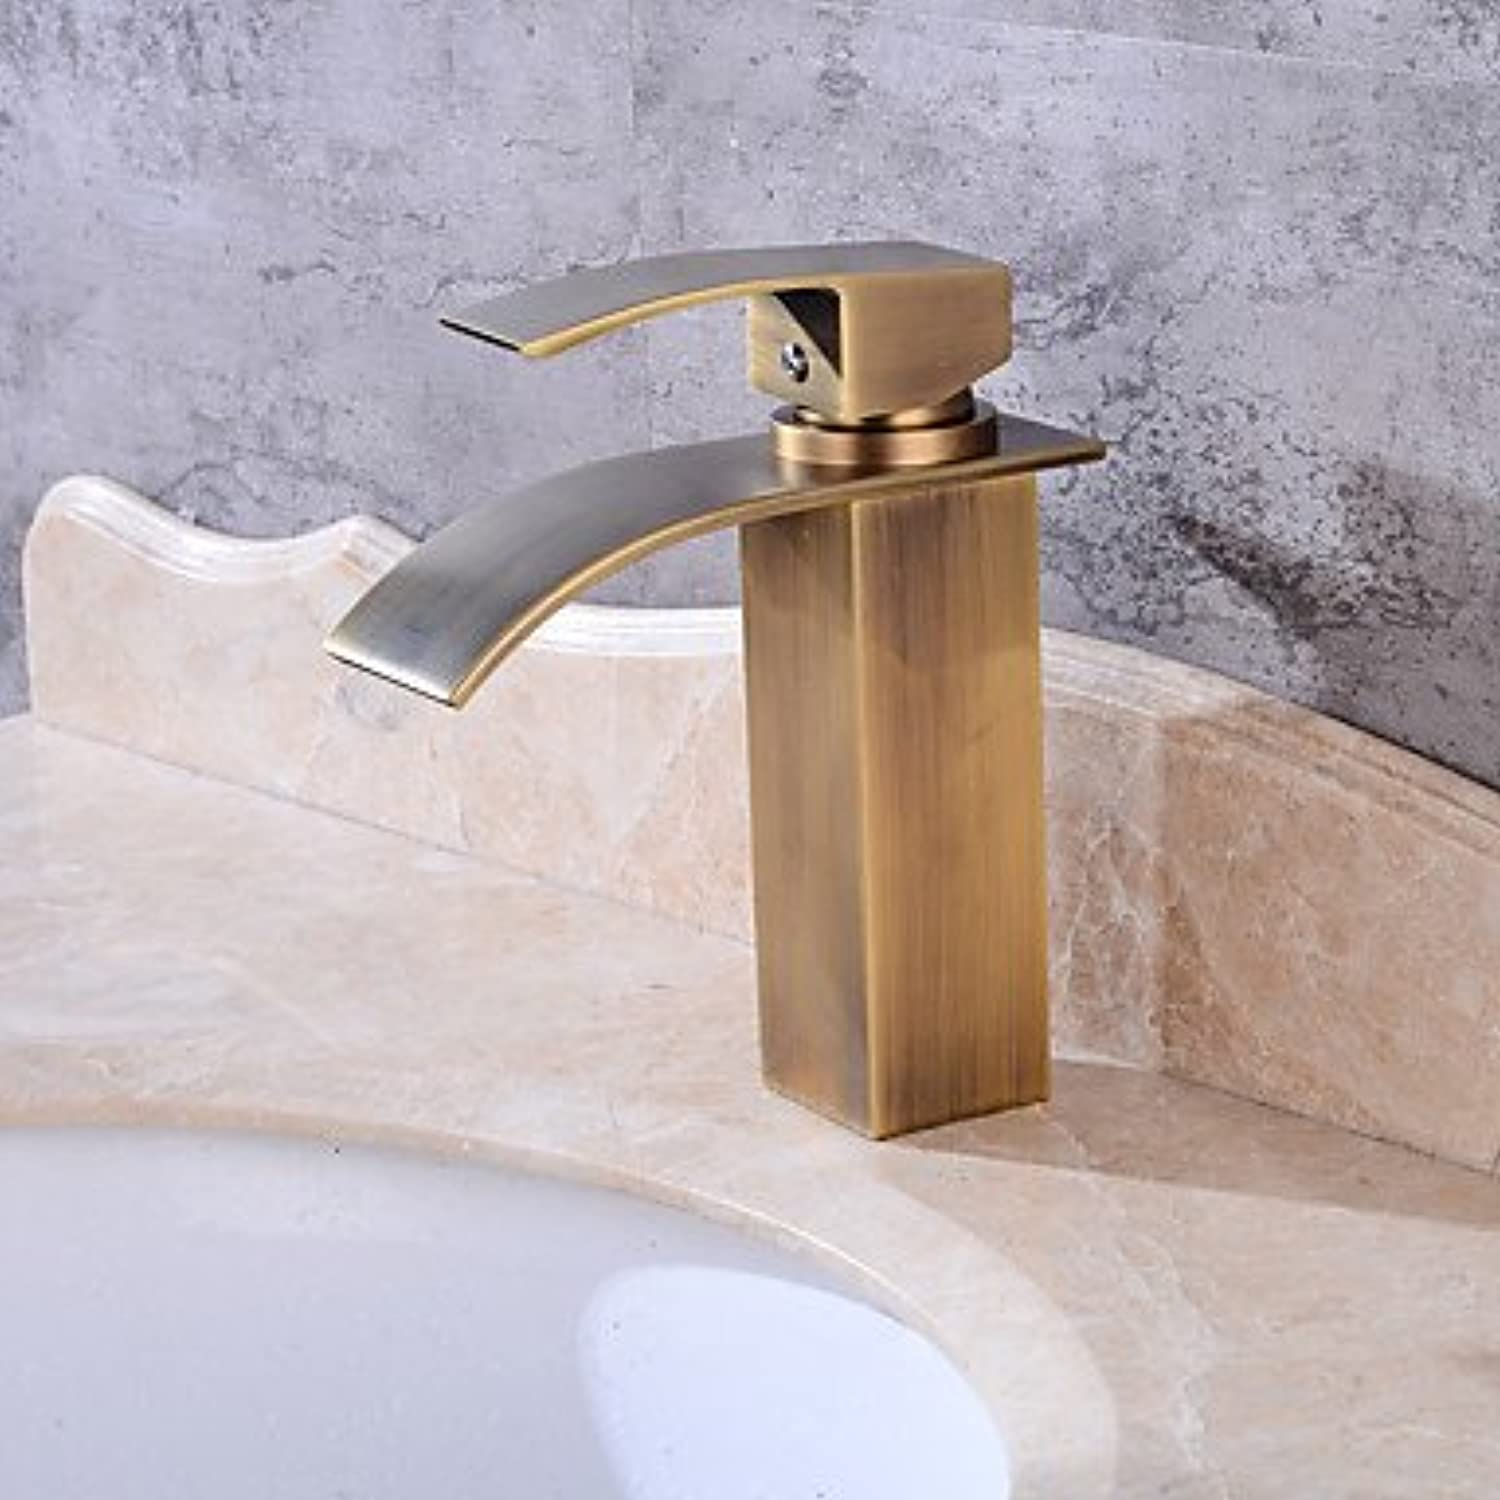 Mangeoo Faucet Set - Waterfall Antique Copper Centerset Single Handle One Holebath Taps